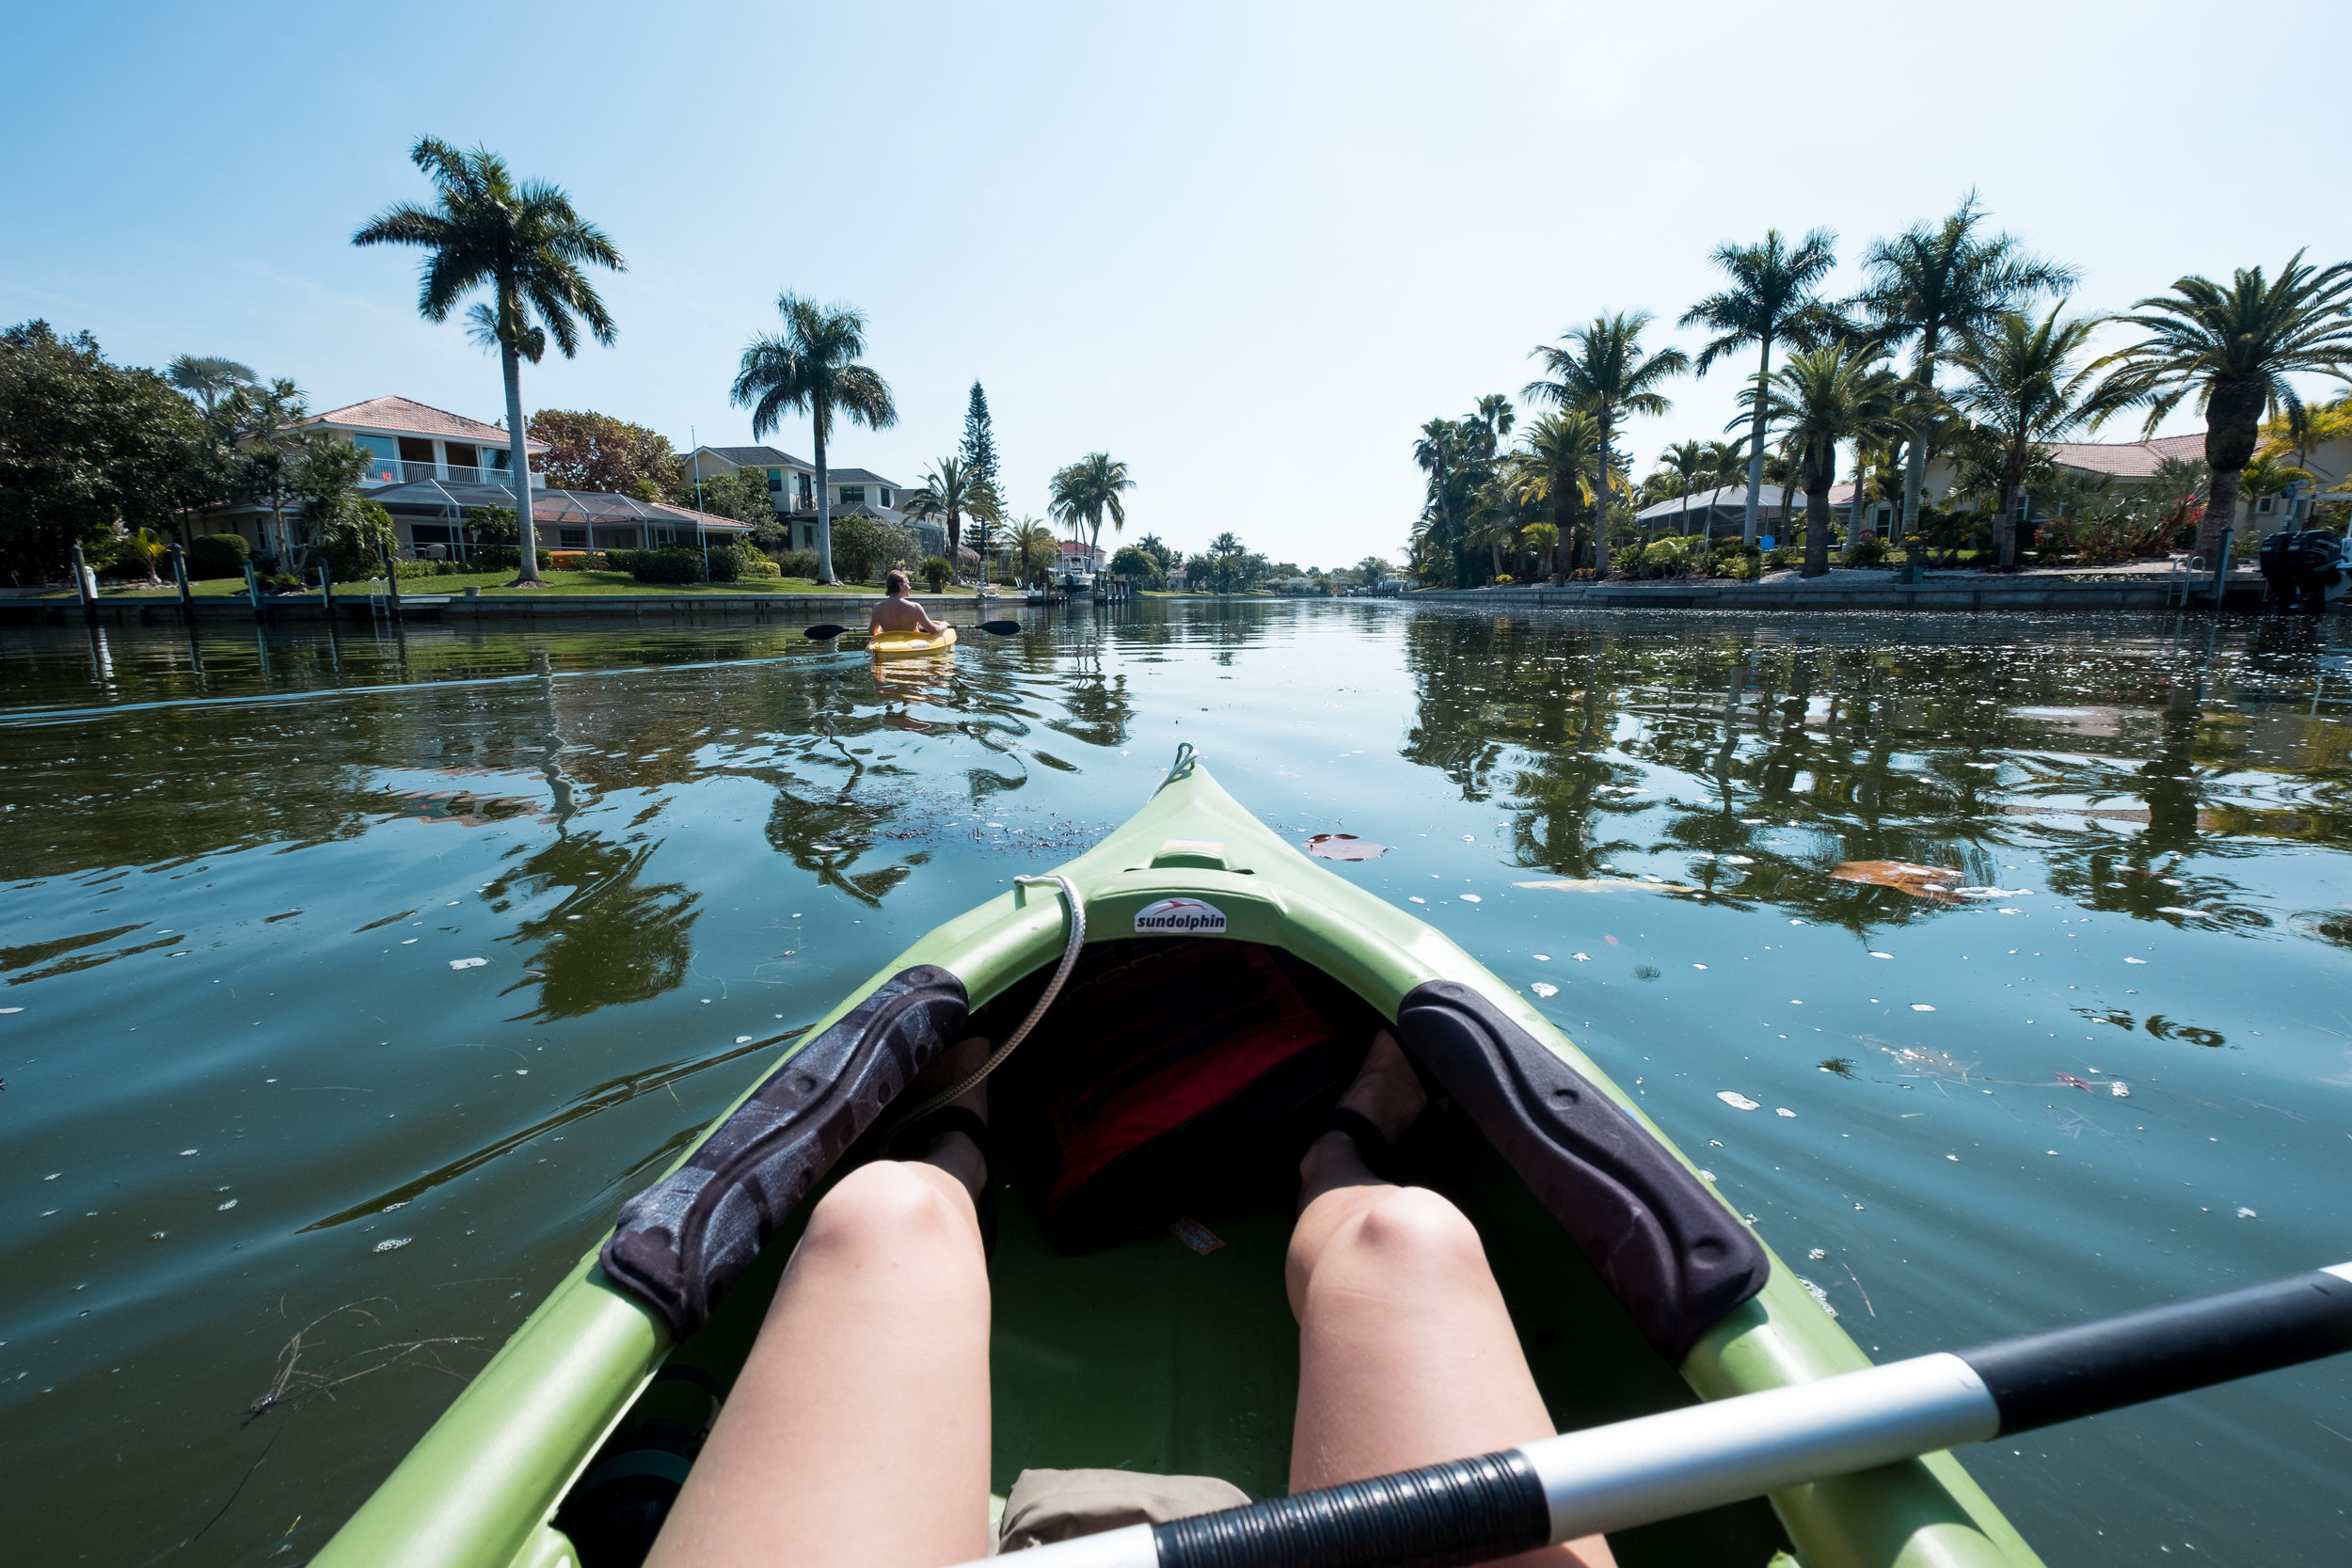 Kayaking in the canals on Sanibel.